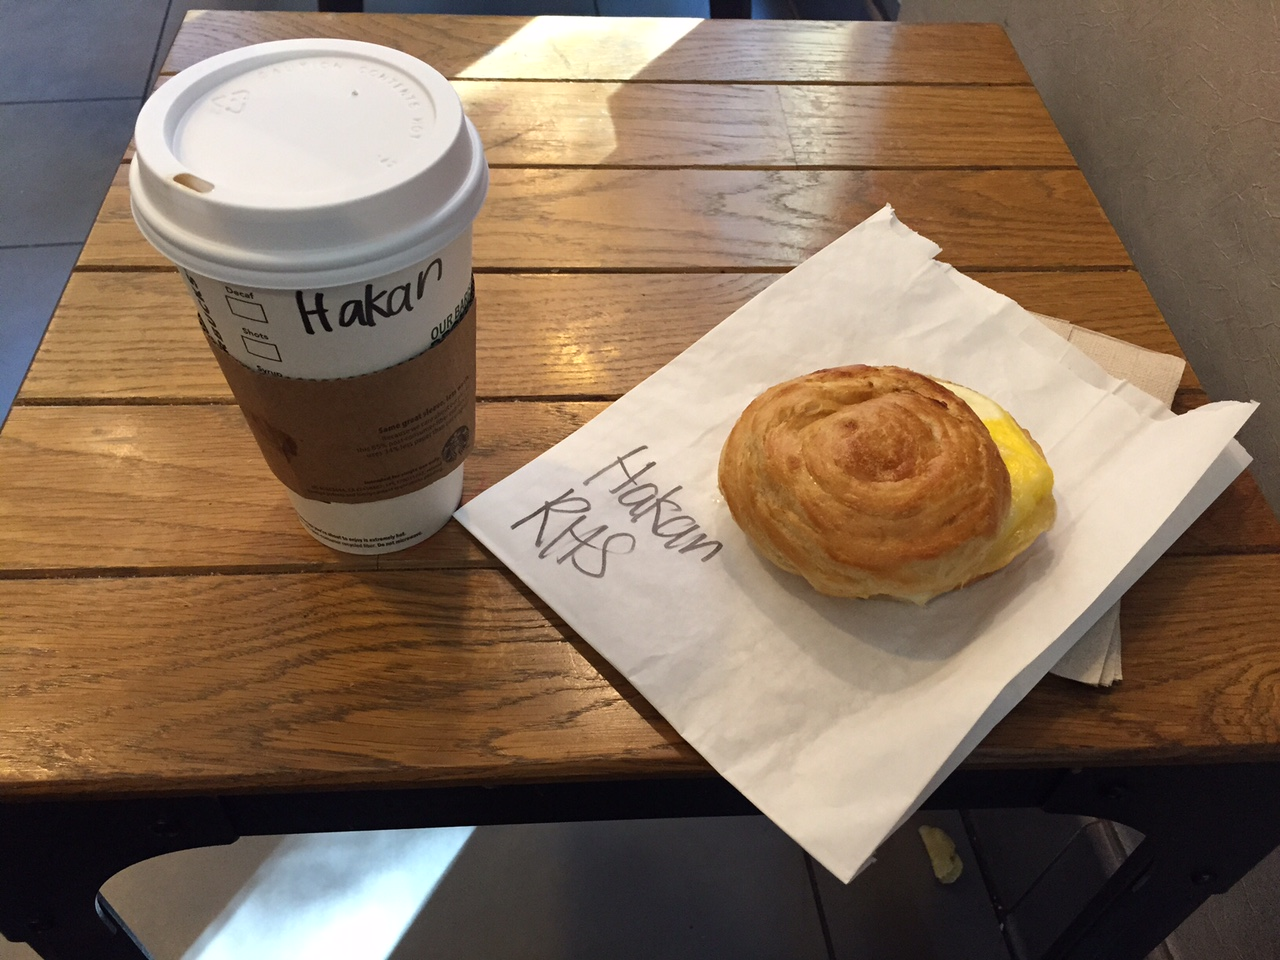 Important work being done in San Jose today. Breakfast is essential. Starbucks is a life saver.